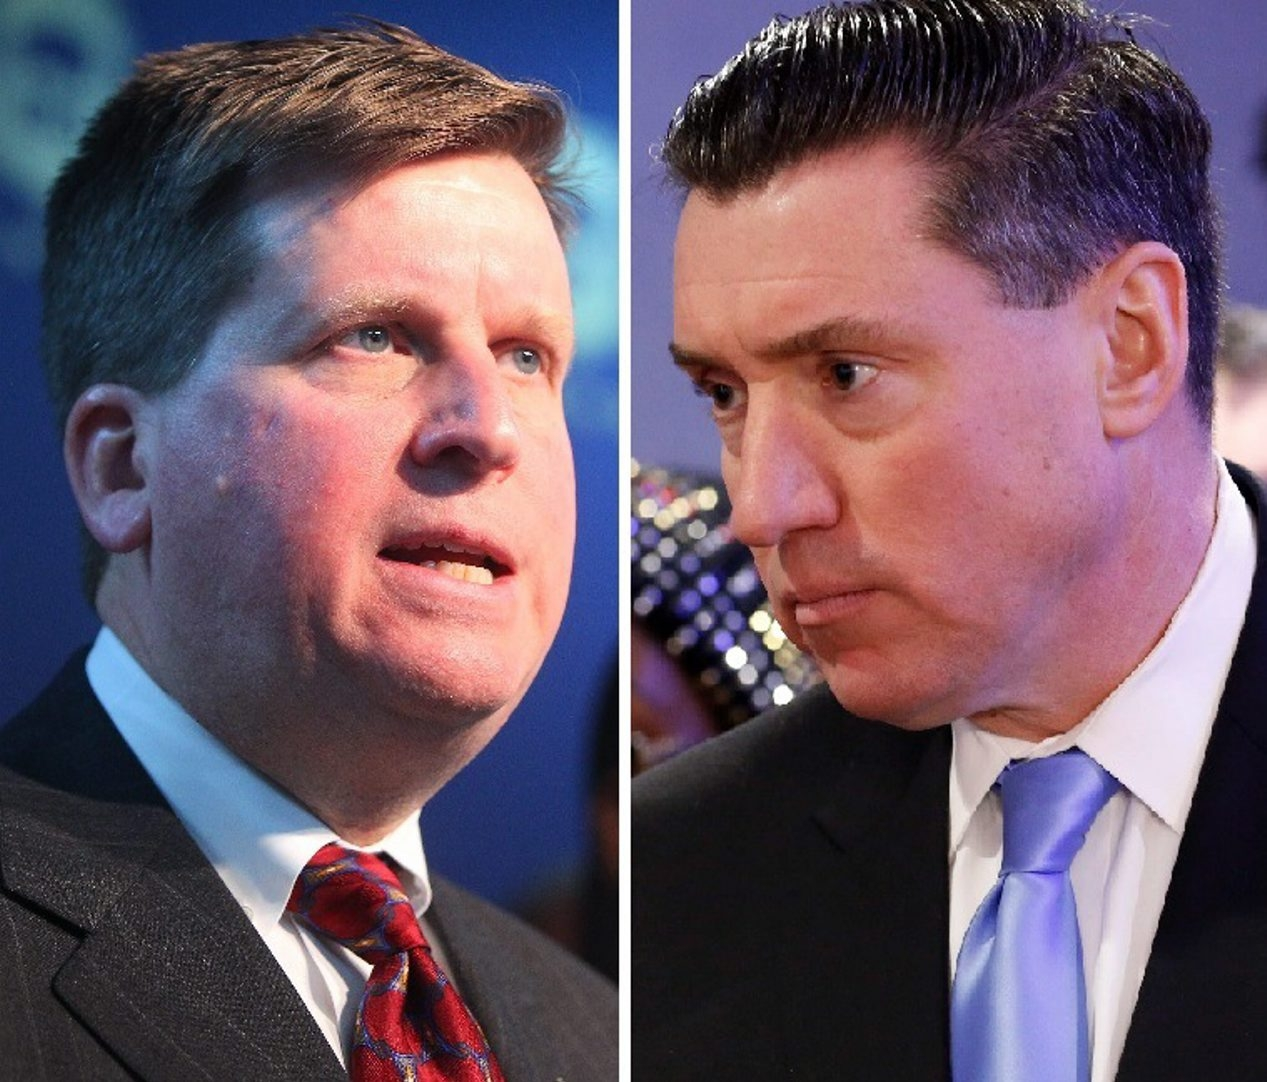 A web domain name flynnforda.com leads to the campaign website of Acting District Attorney acting District Attorney Michael J. Flaherty Jr., left, rather than the site for candidate John J. Flynn Jr., right. (News file photos)